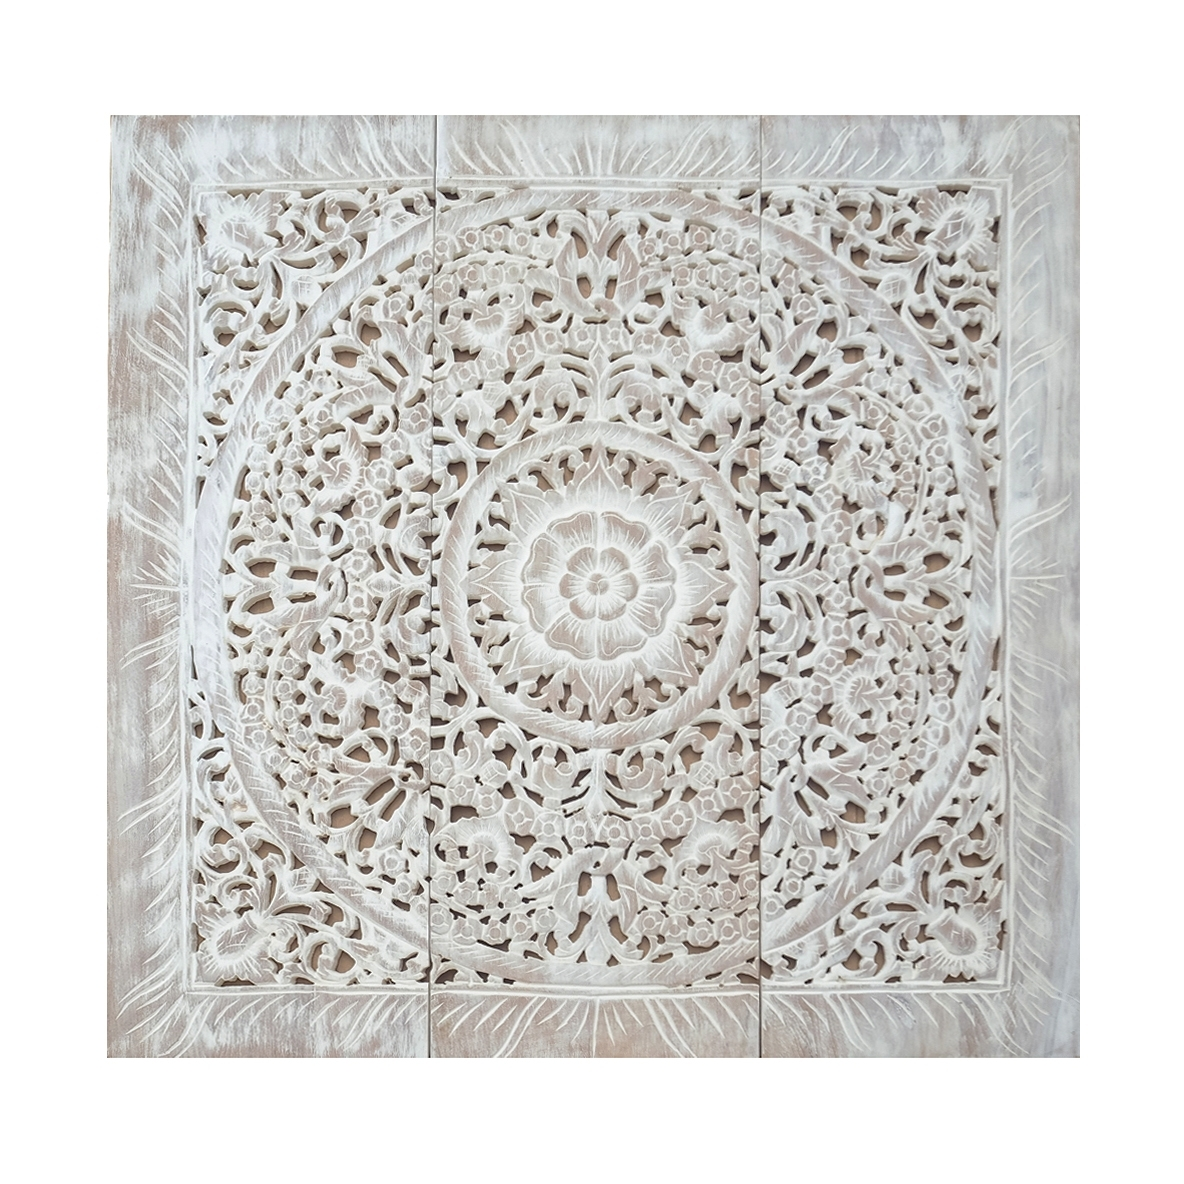 Buy Balinese Antique Wood Carving Wall Art Panel Online Throughout Most Up To Date Wall Art Panels (View 11 of 20)